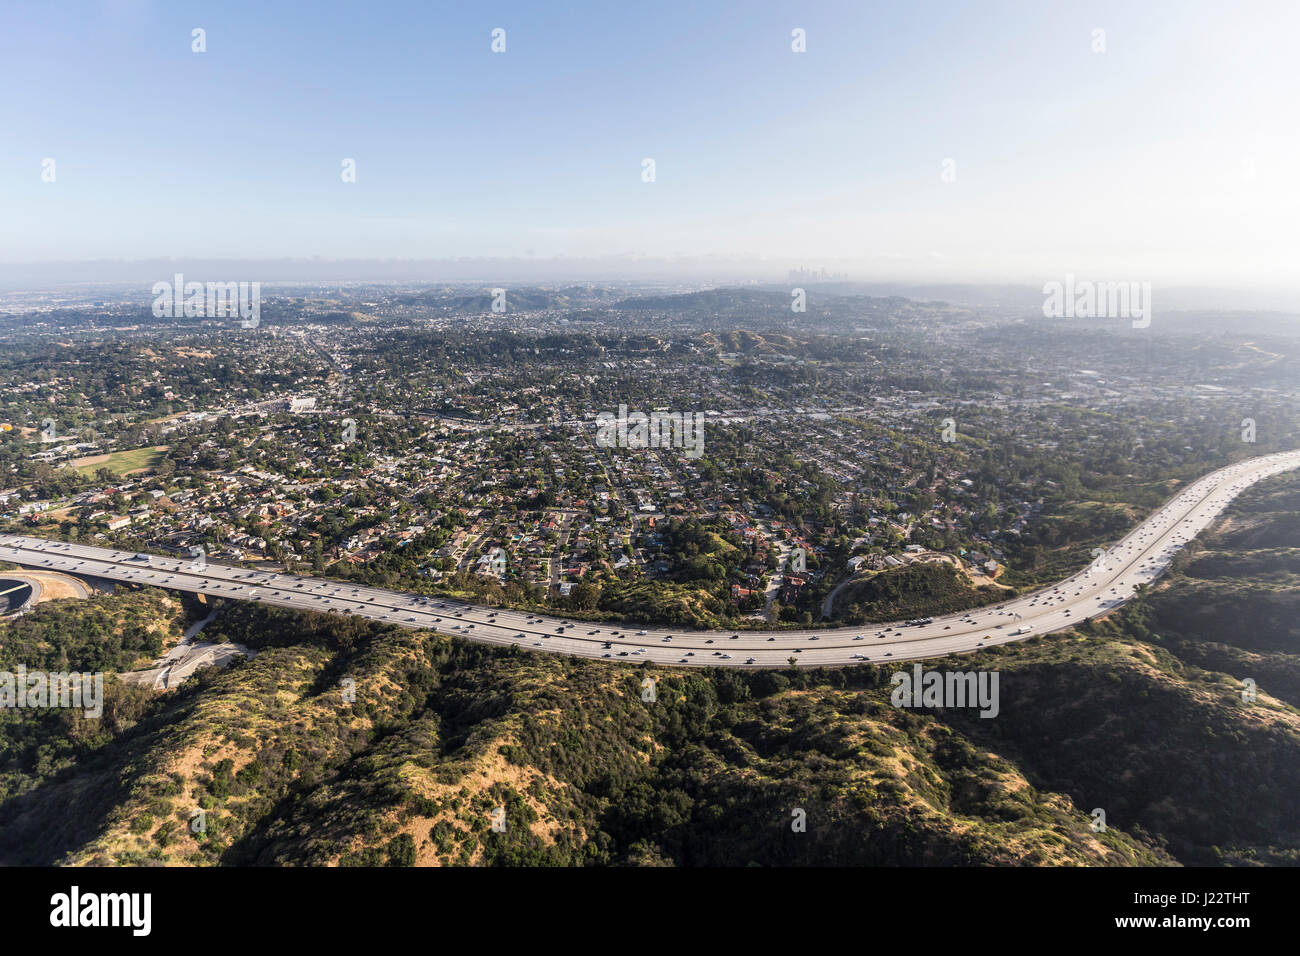 Aerial view of the Eagle Rock neighborhood and Ventura 134 Freeway in Los Angeles, California. - Stock Image